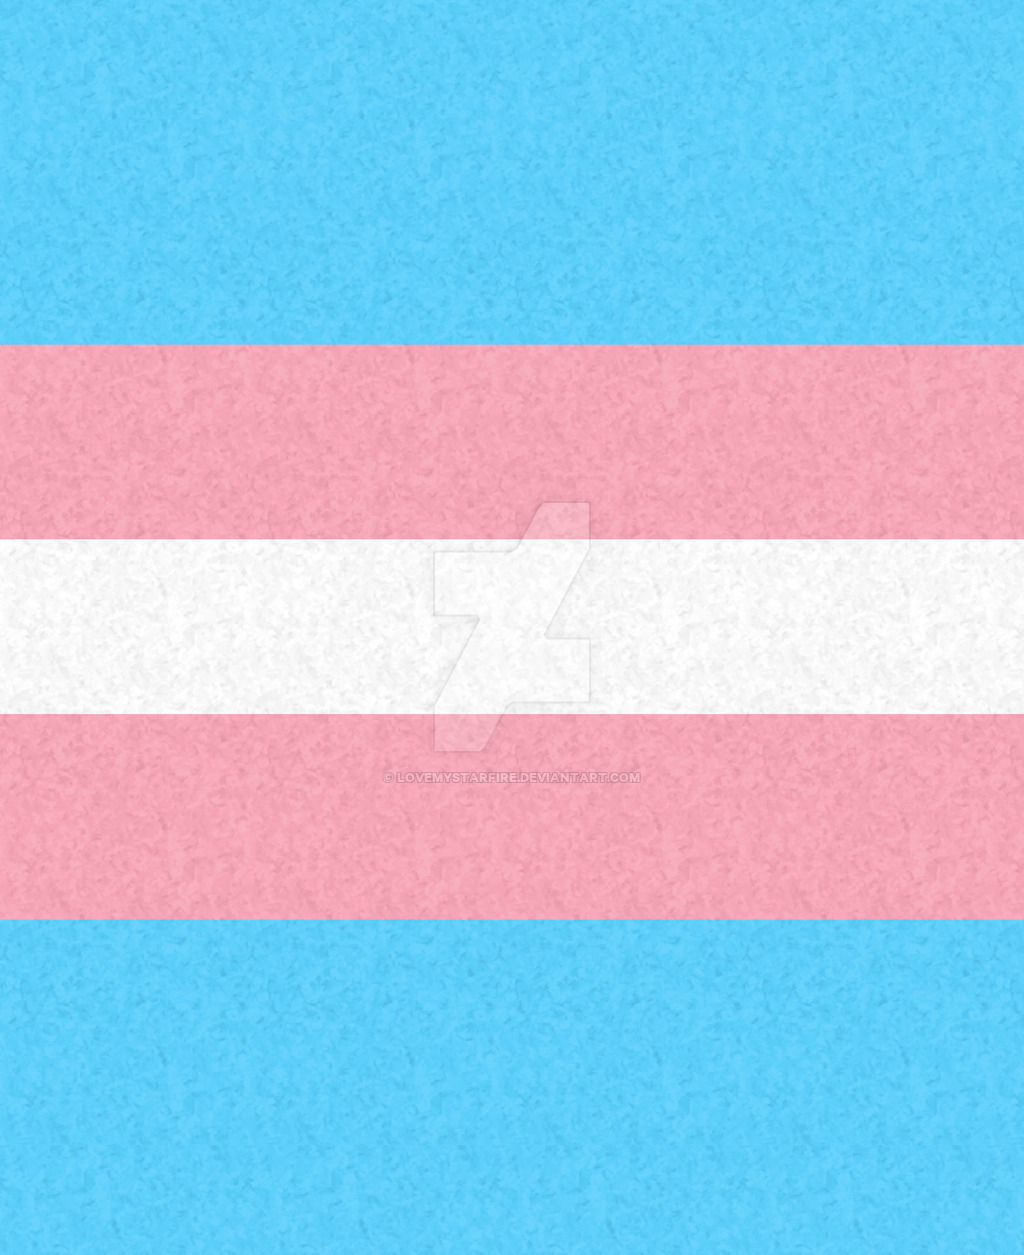 transgender pride flag white transgender community pride colors 1024x1255